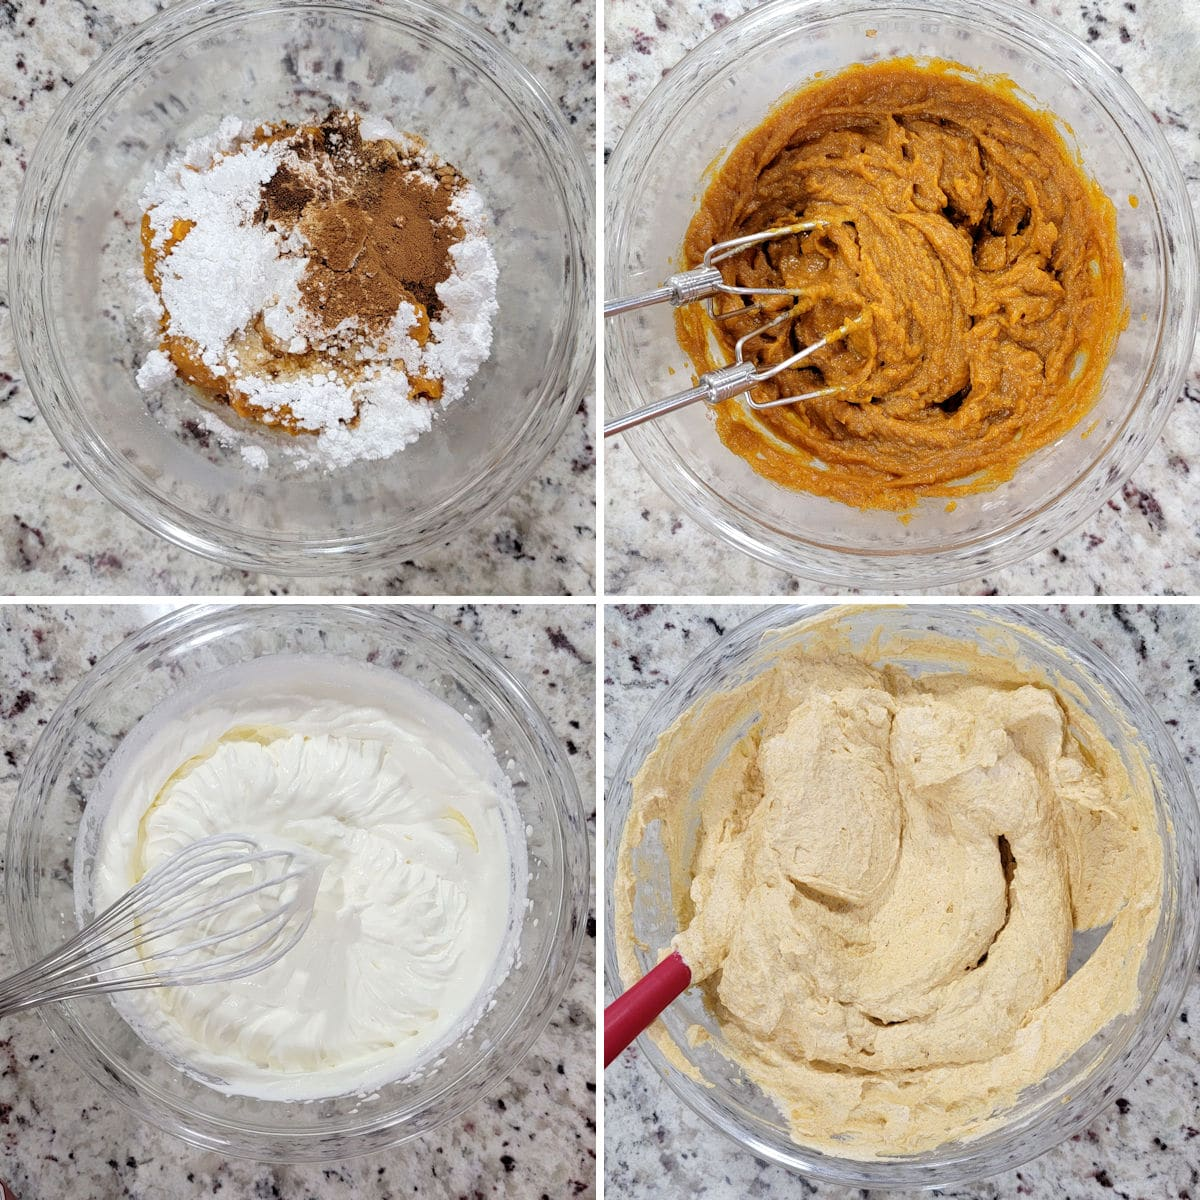 Mixing pumpkin icebox cake filling in a glass bowl.